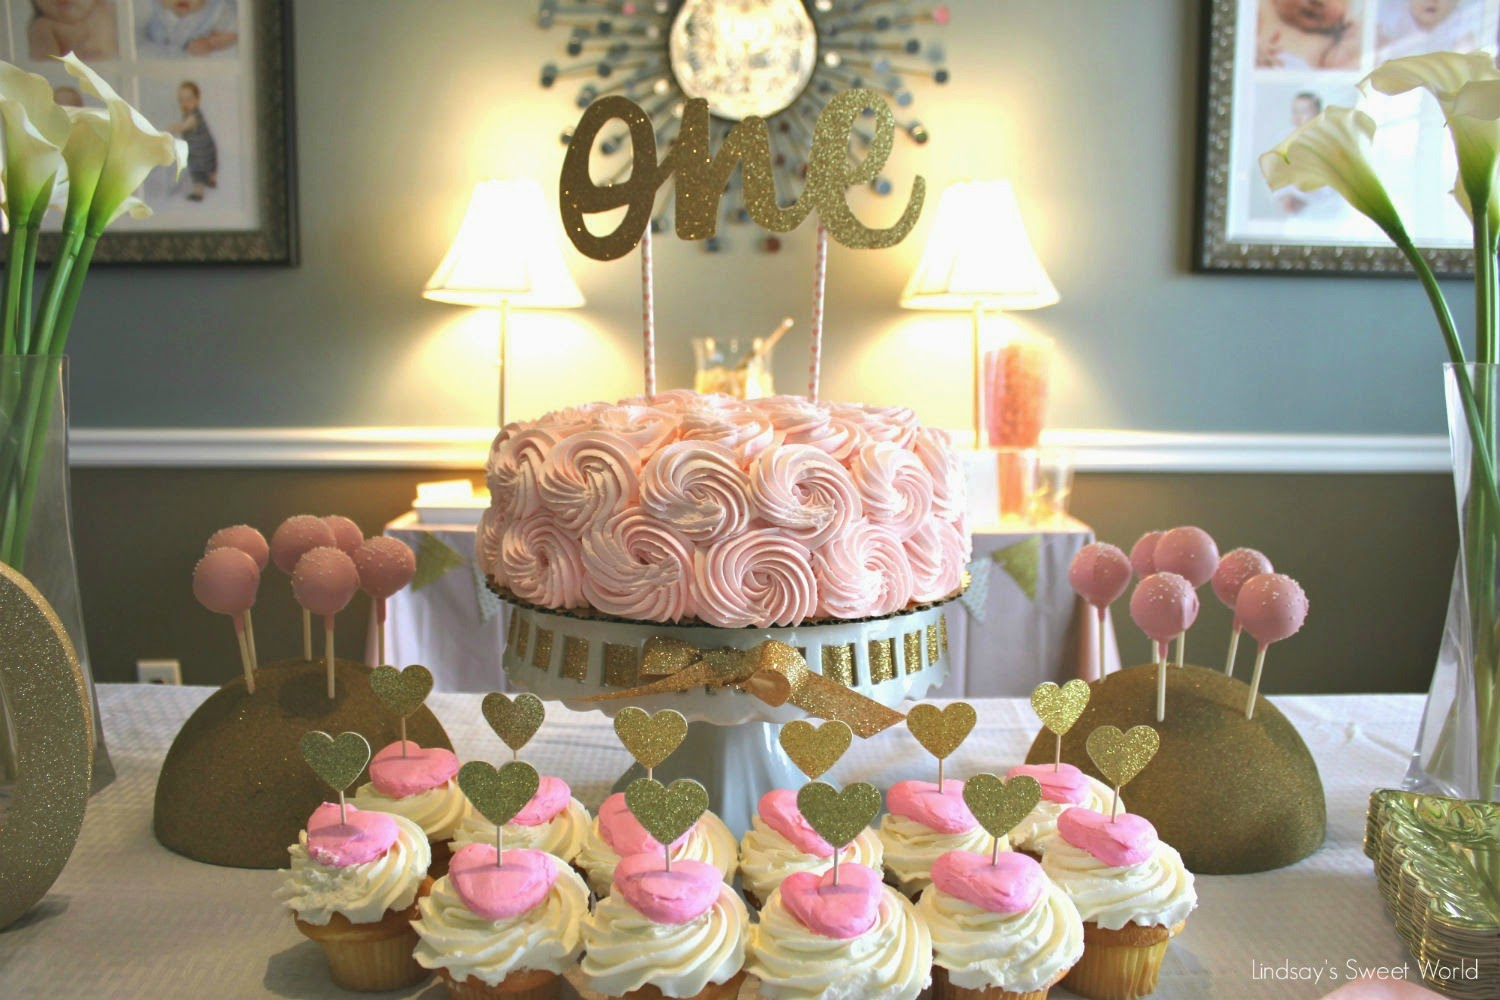 Lindsays Sweet World Olivia Cates Pink Gold First Birthday